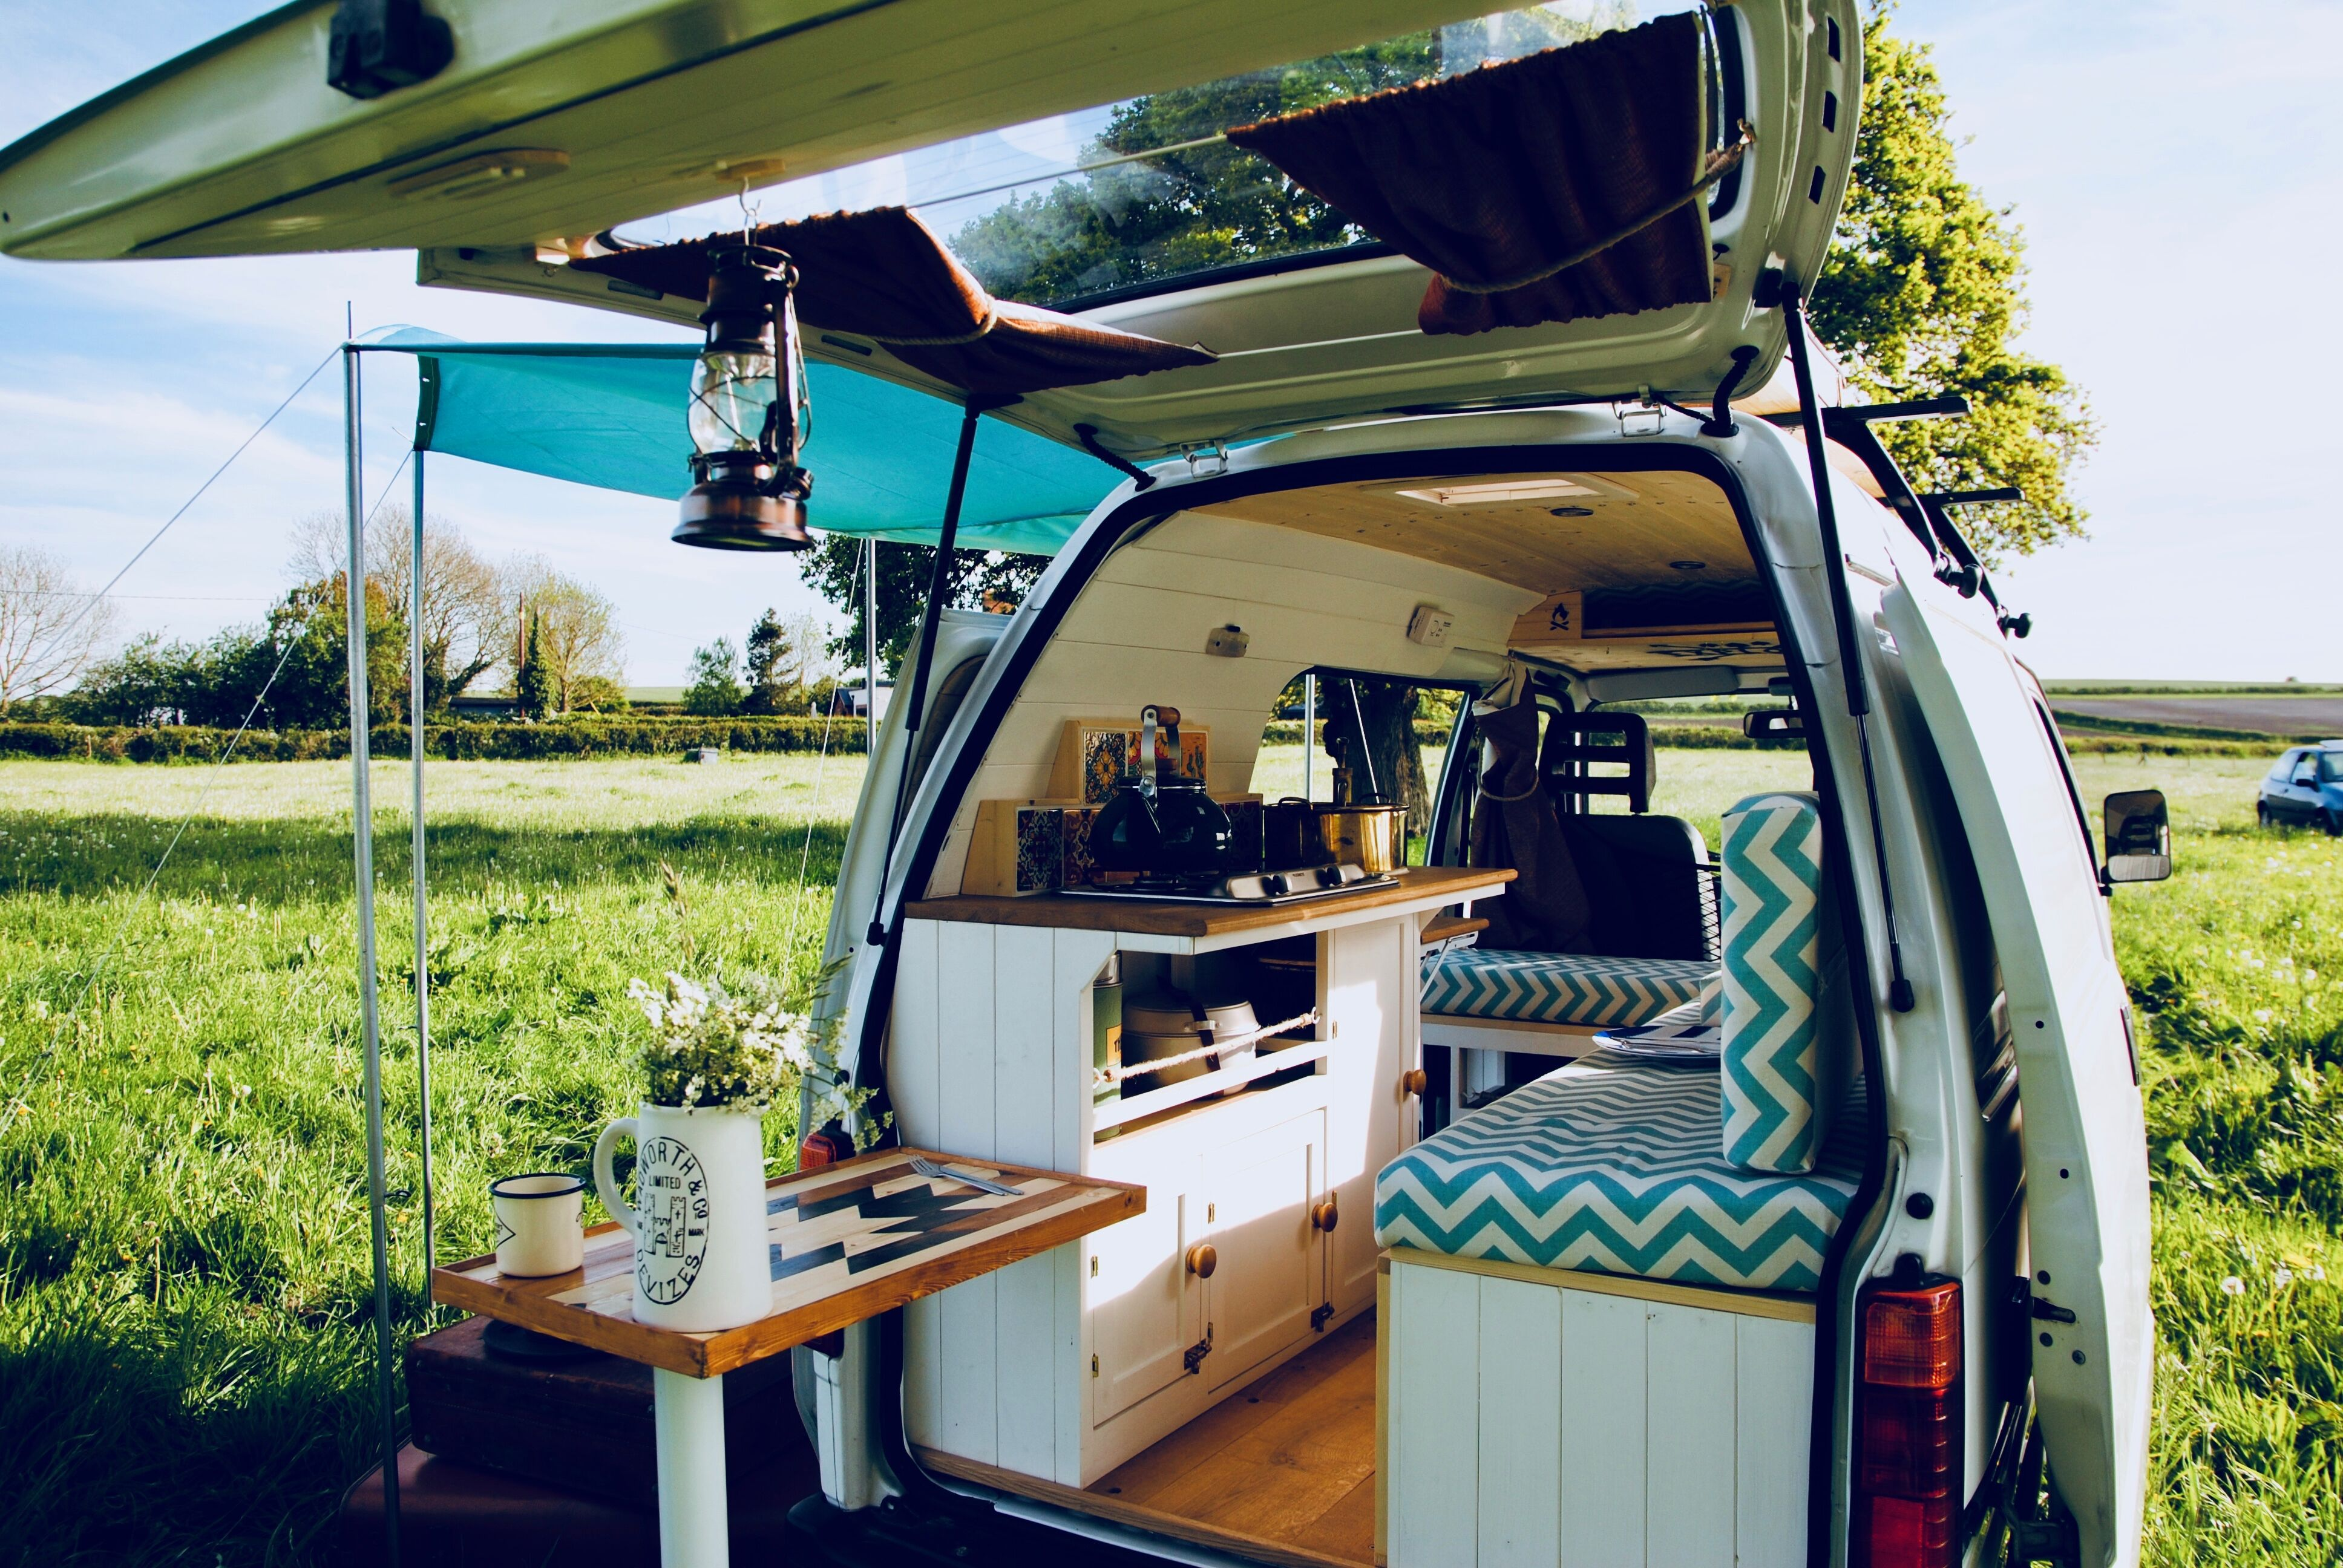 How Newlyweds Turned a Van into the Cutest Tiny Home Ever